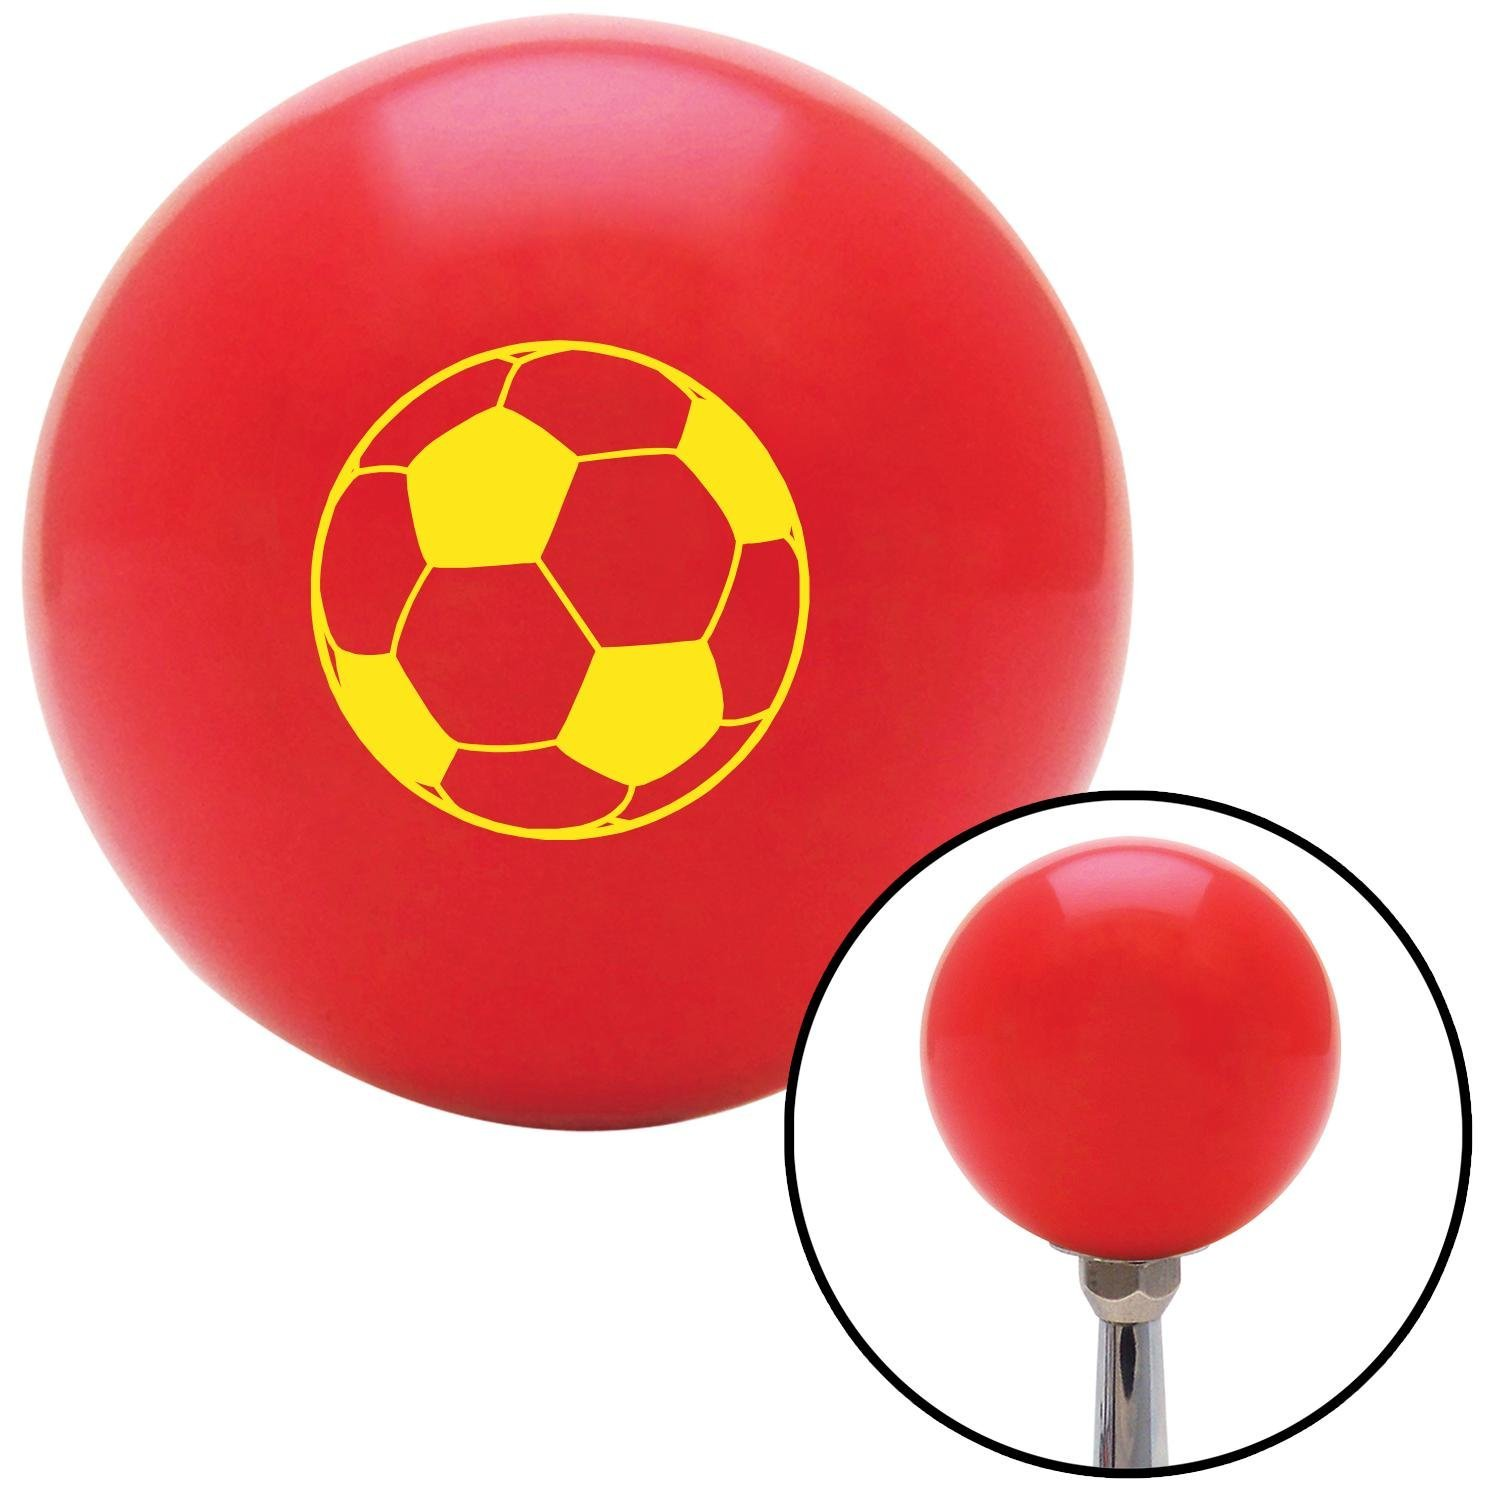 American Shifter 101509 Red Shift Knob with M16 x 1.5 Insert Yellow Soccer Ball